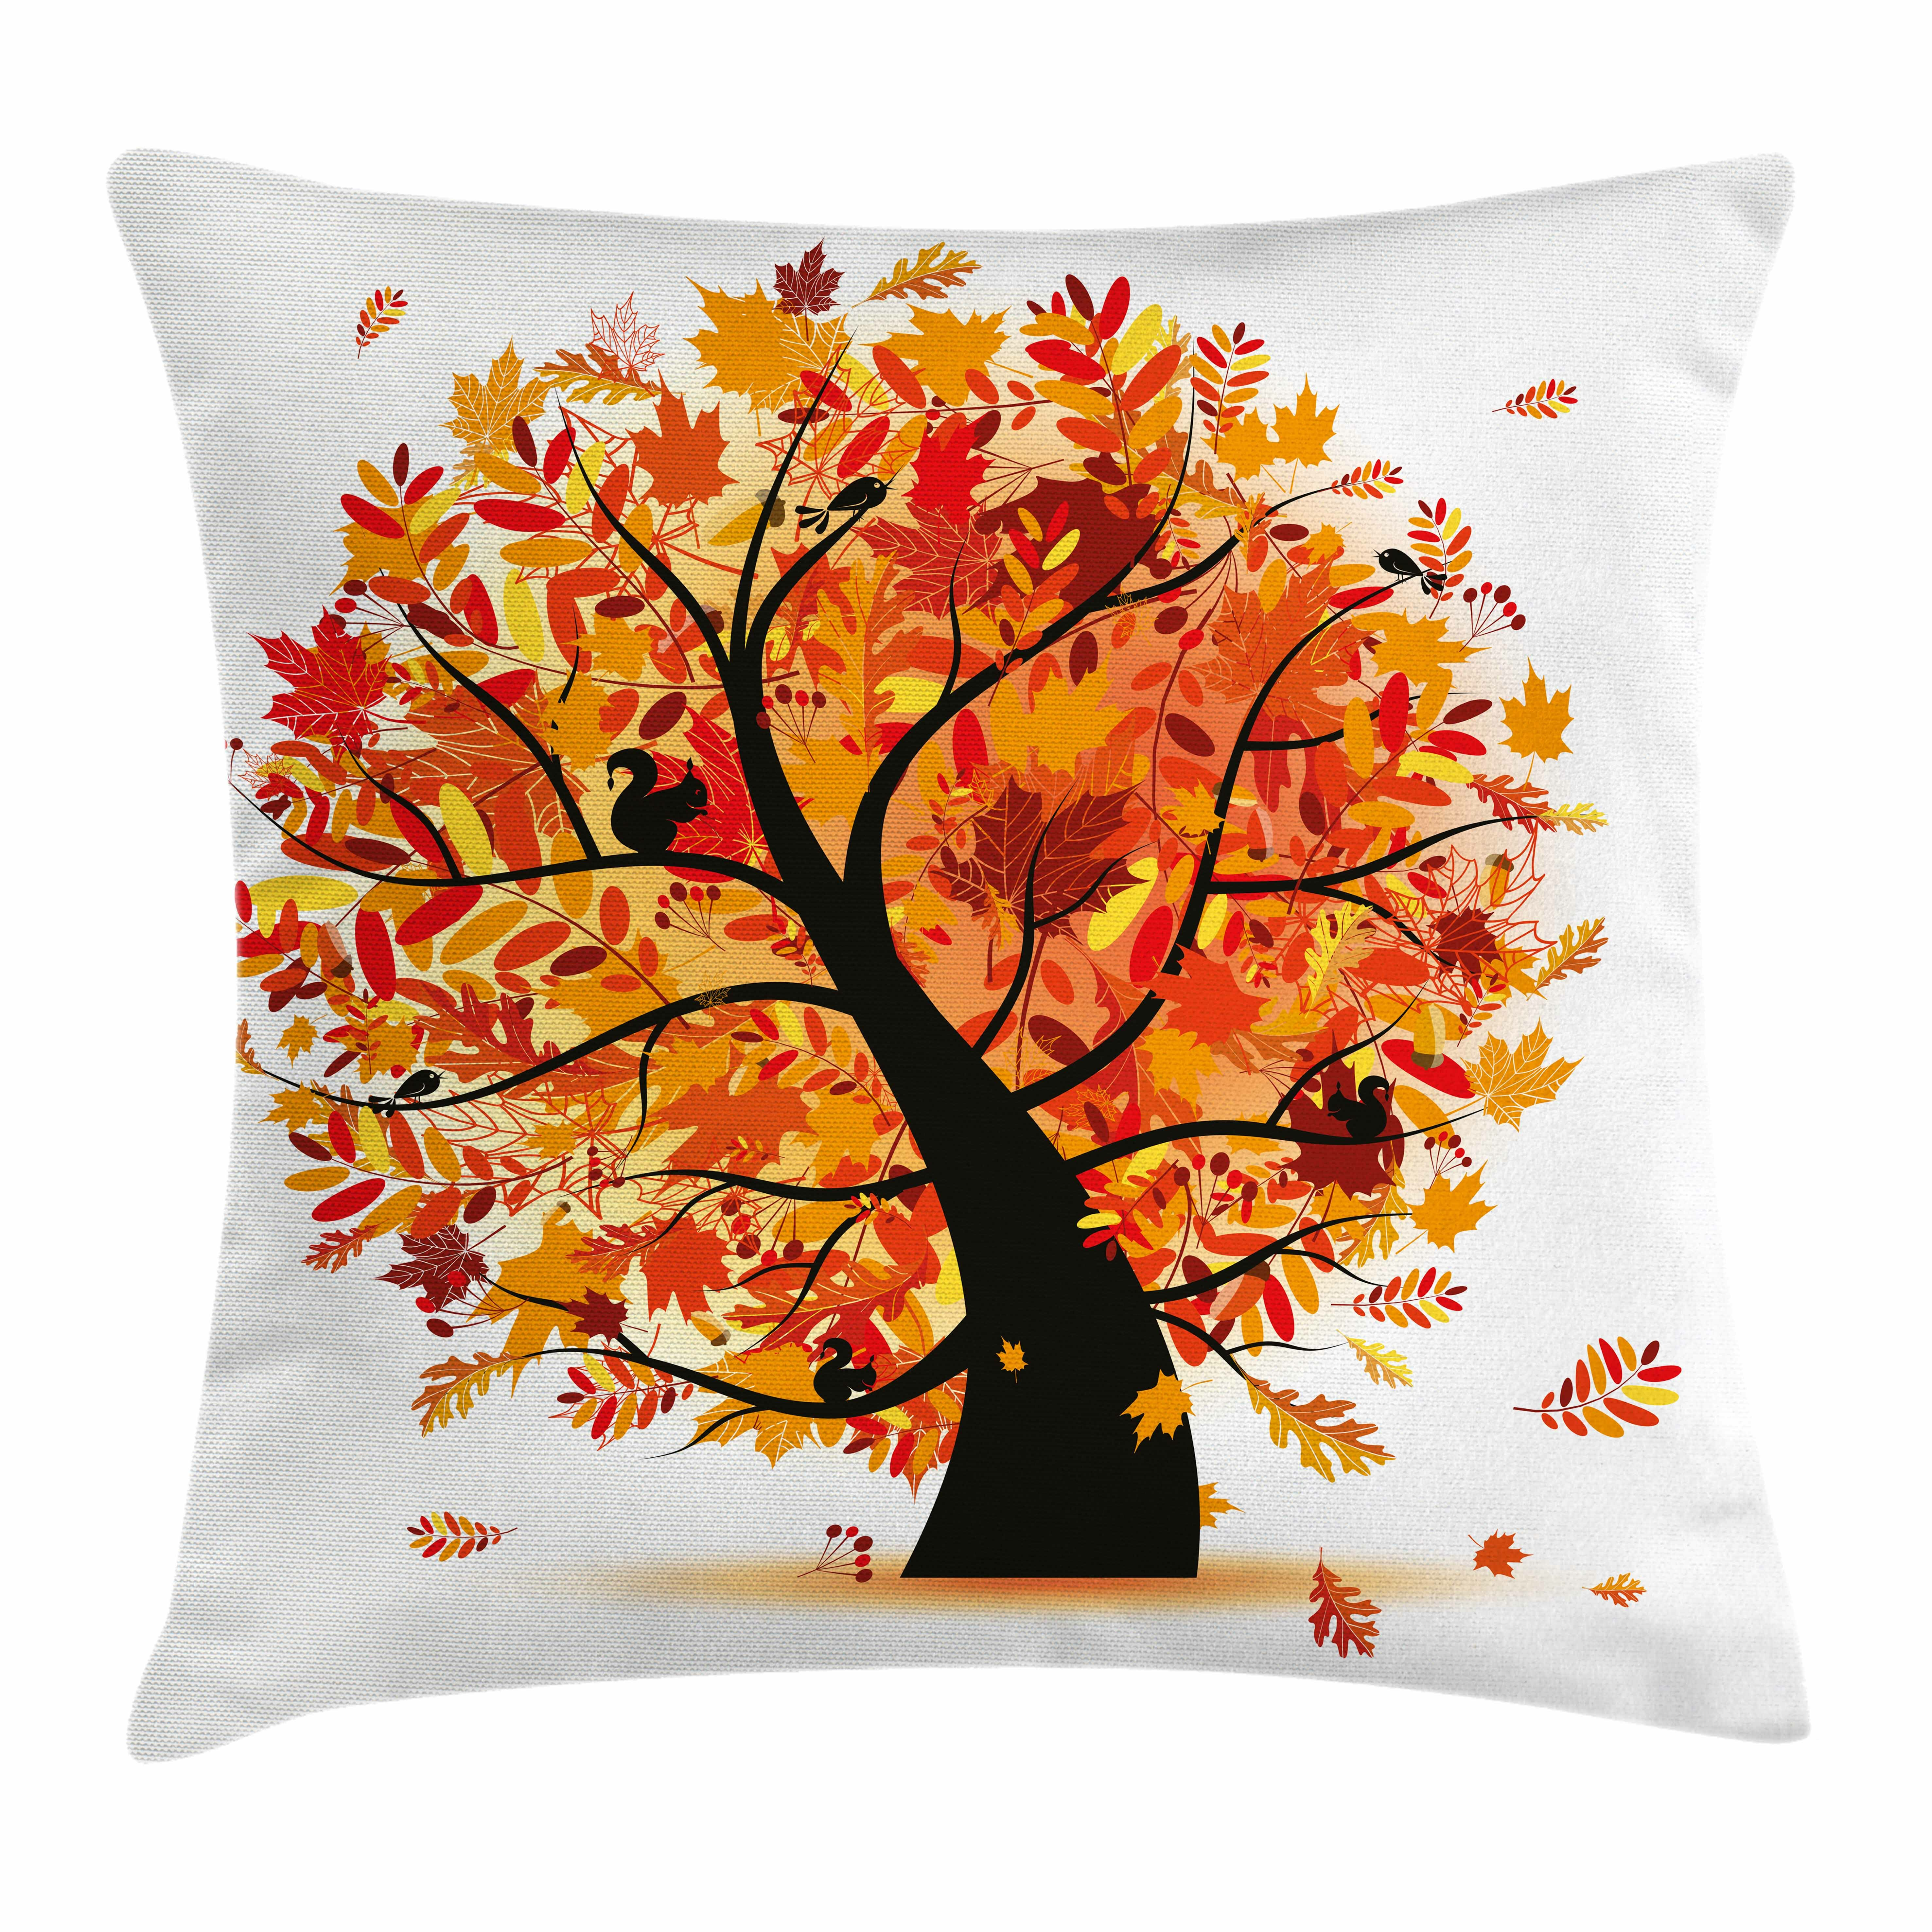 The Holiday Aisle Fall Decor Cartoon Tree Artful Square Pillow Cover Are you searching for cartoon tree png images or vector? wayfair